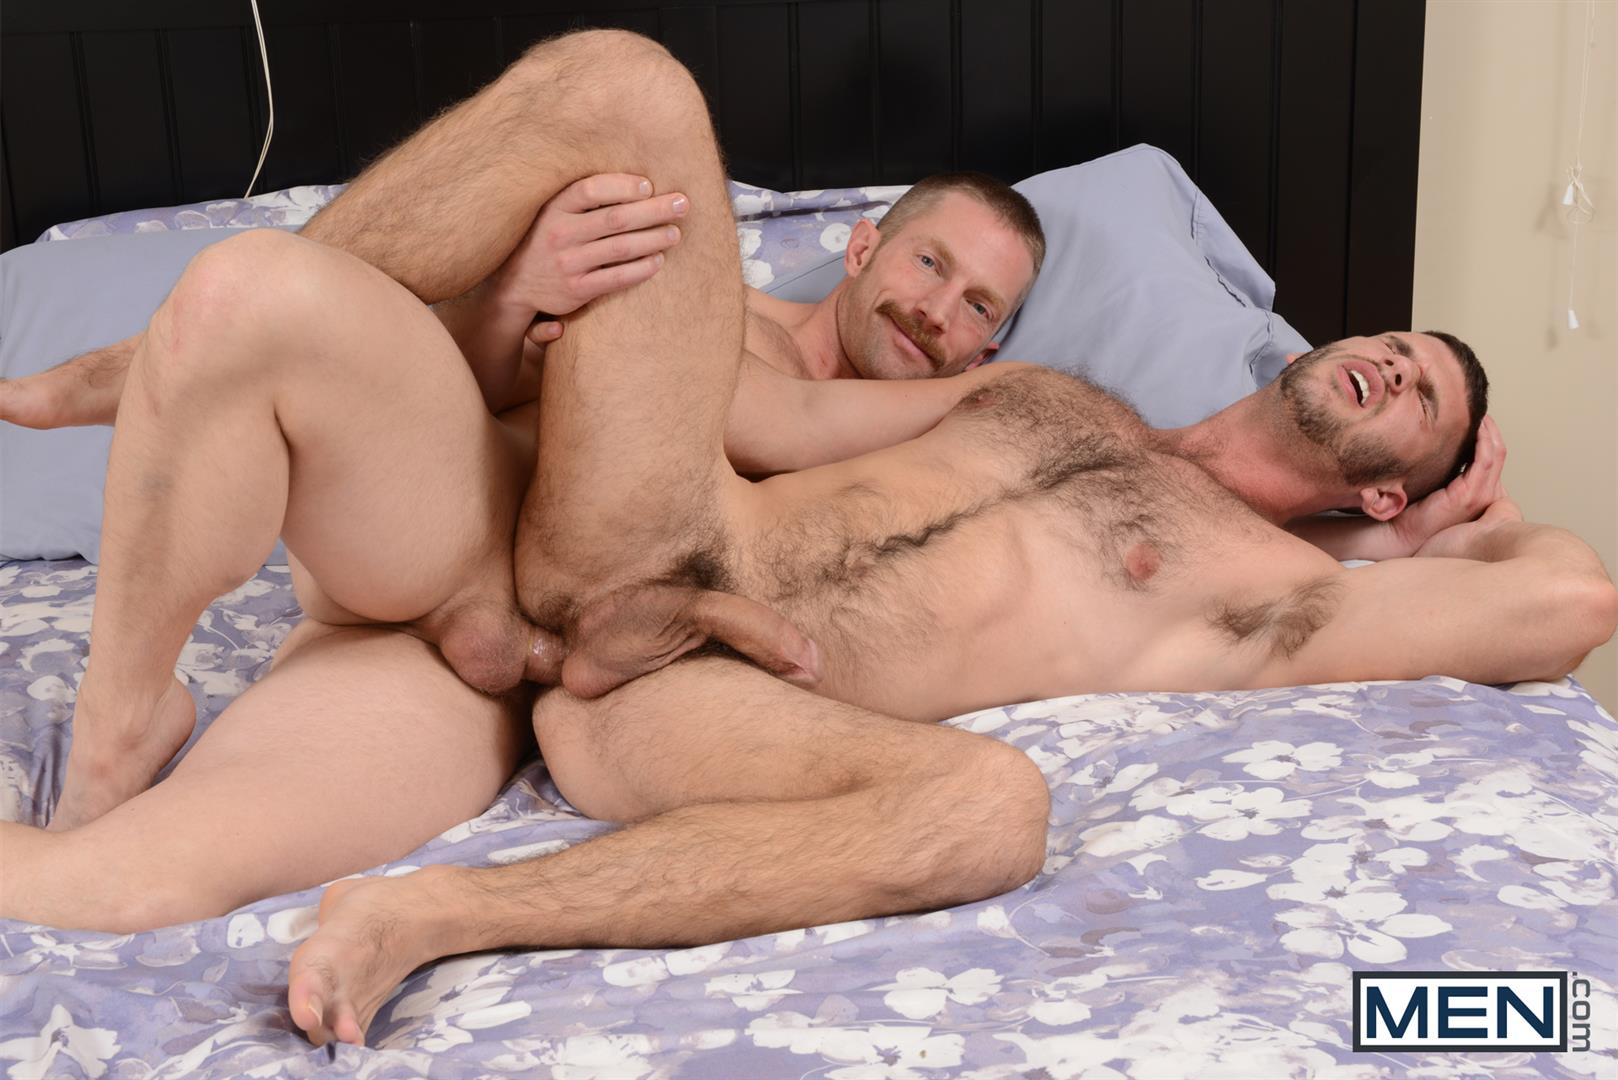 gay men getting fucked